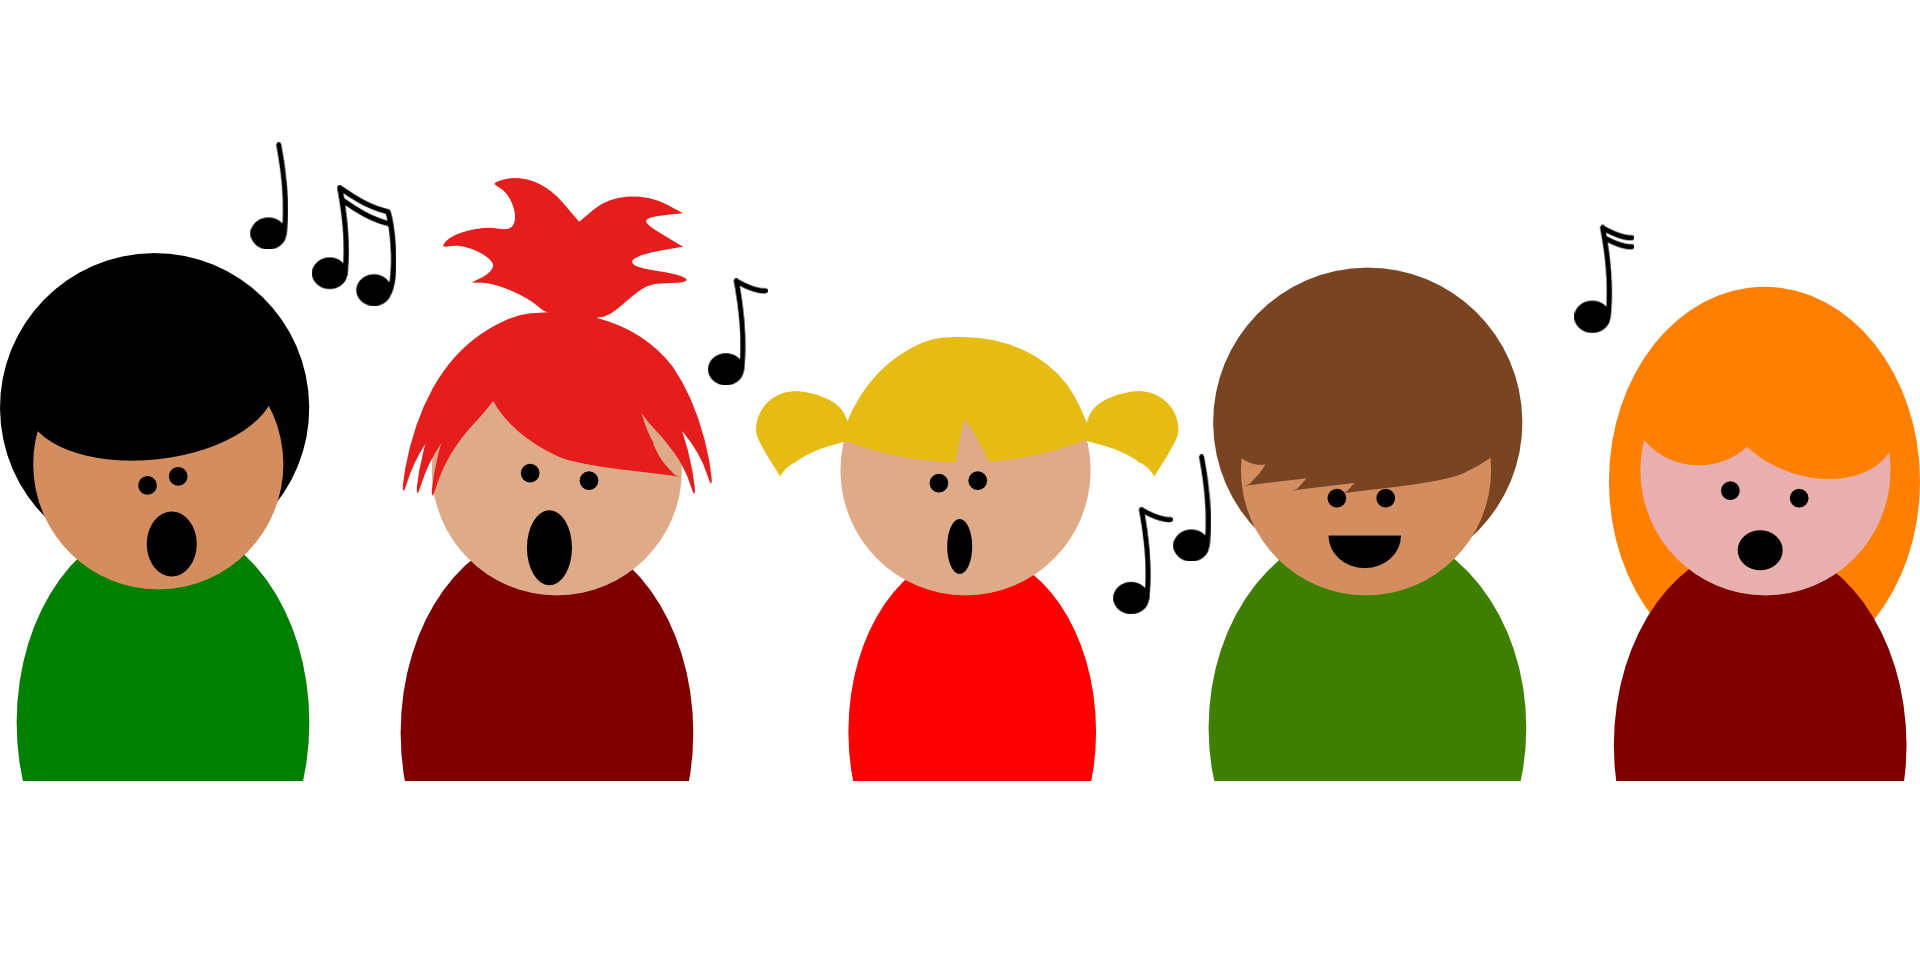 Christmas caroling clipart clip art royalty free download Caroling in the Caverns @ Grand Caverns - Massanutten Regional Library clip art royalty free download